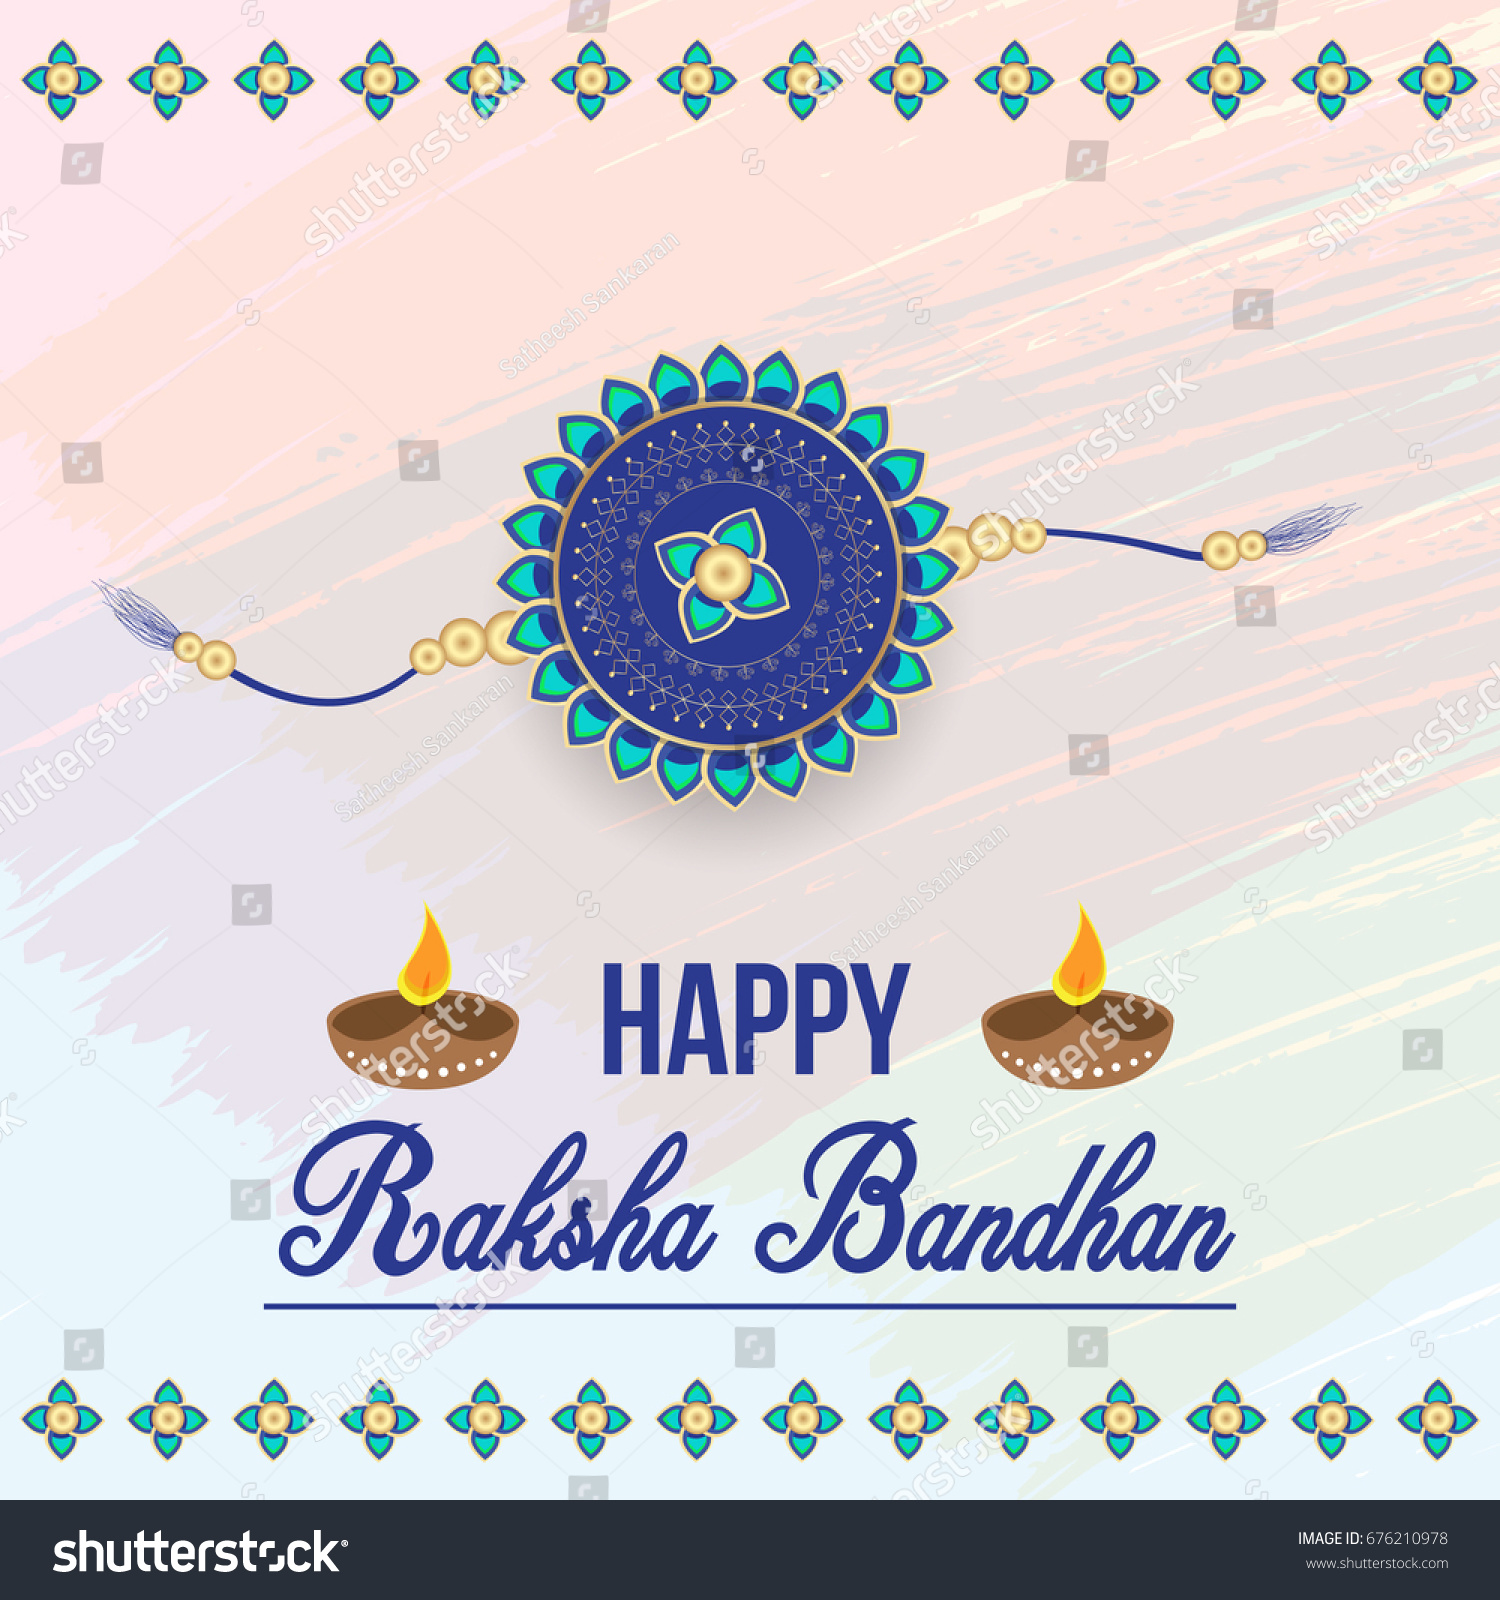 Creative happy raksha bandhan greeting card stock vector 676210978 creative happy raksha bandhan greeting card for indian festival celebrations for brothers and sisters kristyandbryce Image collections